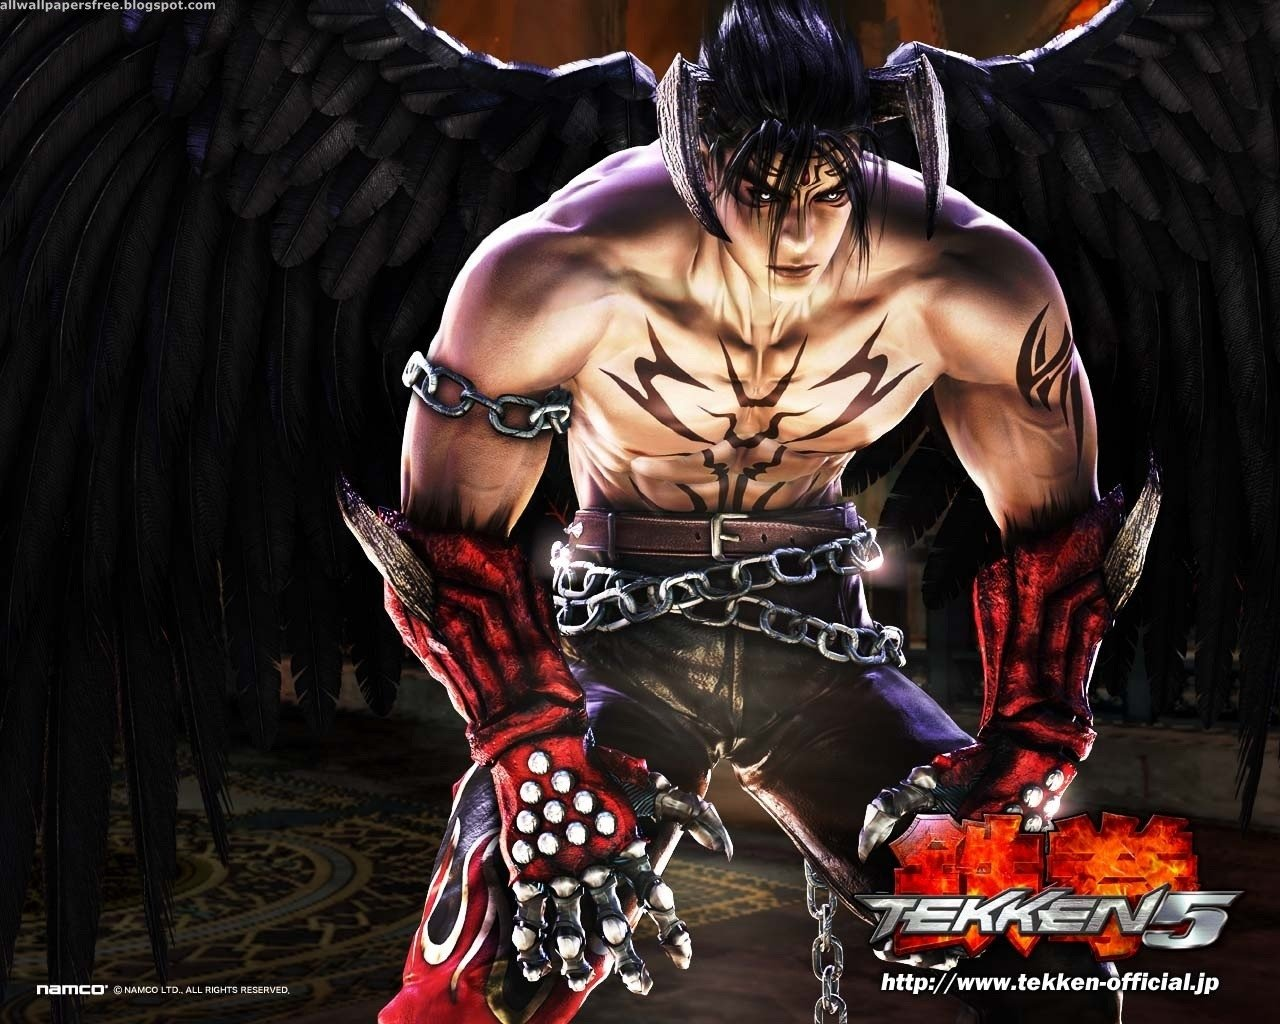 TEKKEN is one of the undisputed HITS of the POLYGON era of videogames. It's credited as being one of the 1st dominant 3D fighting games.